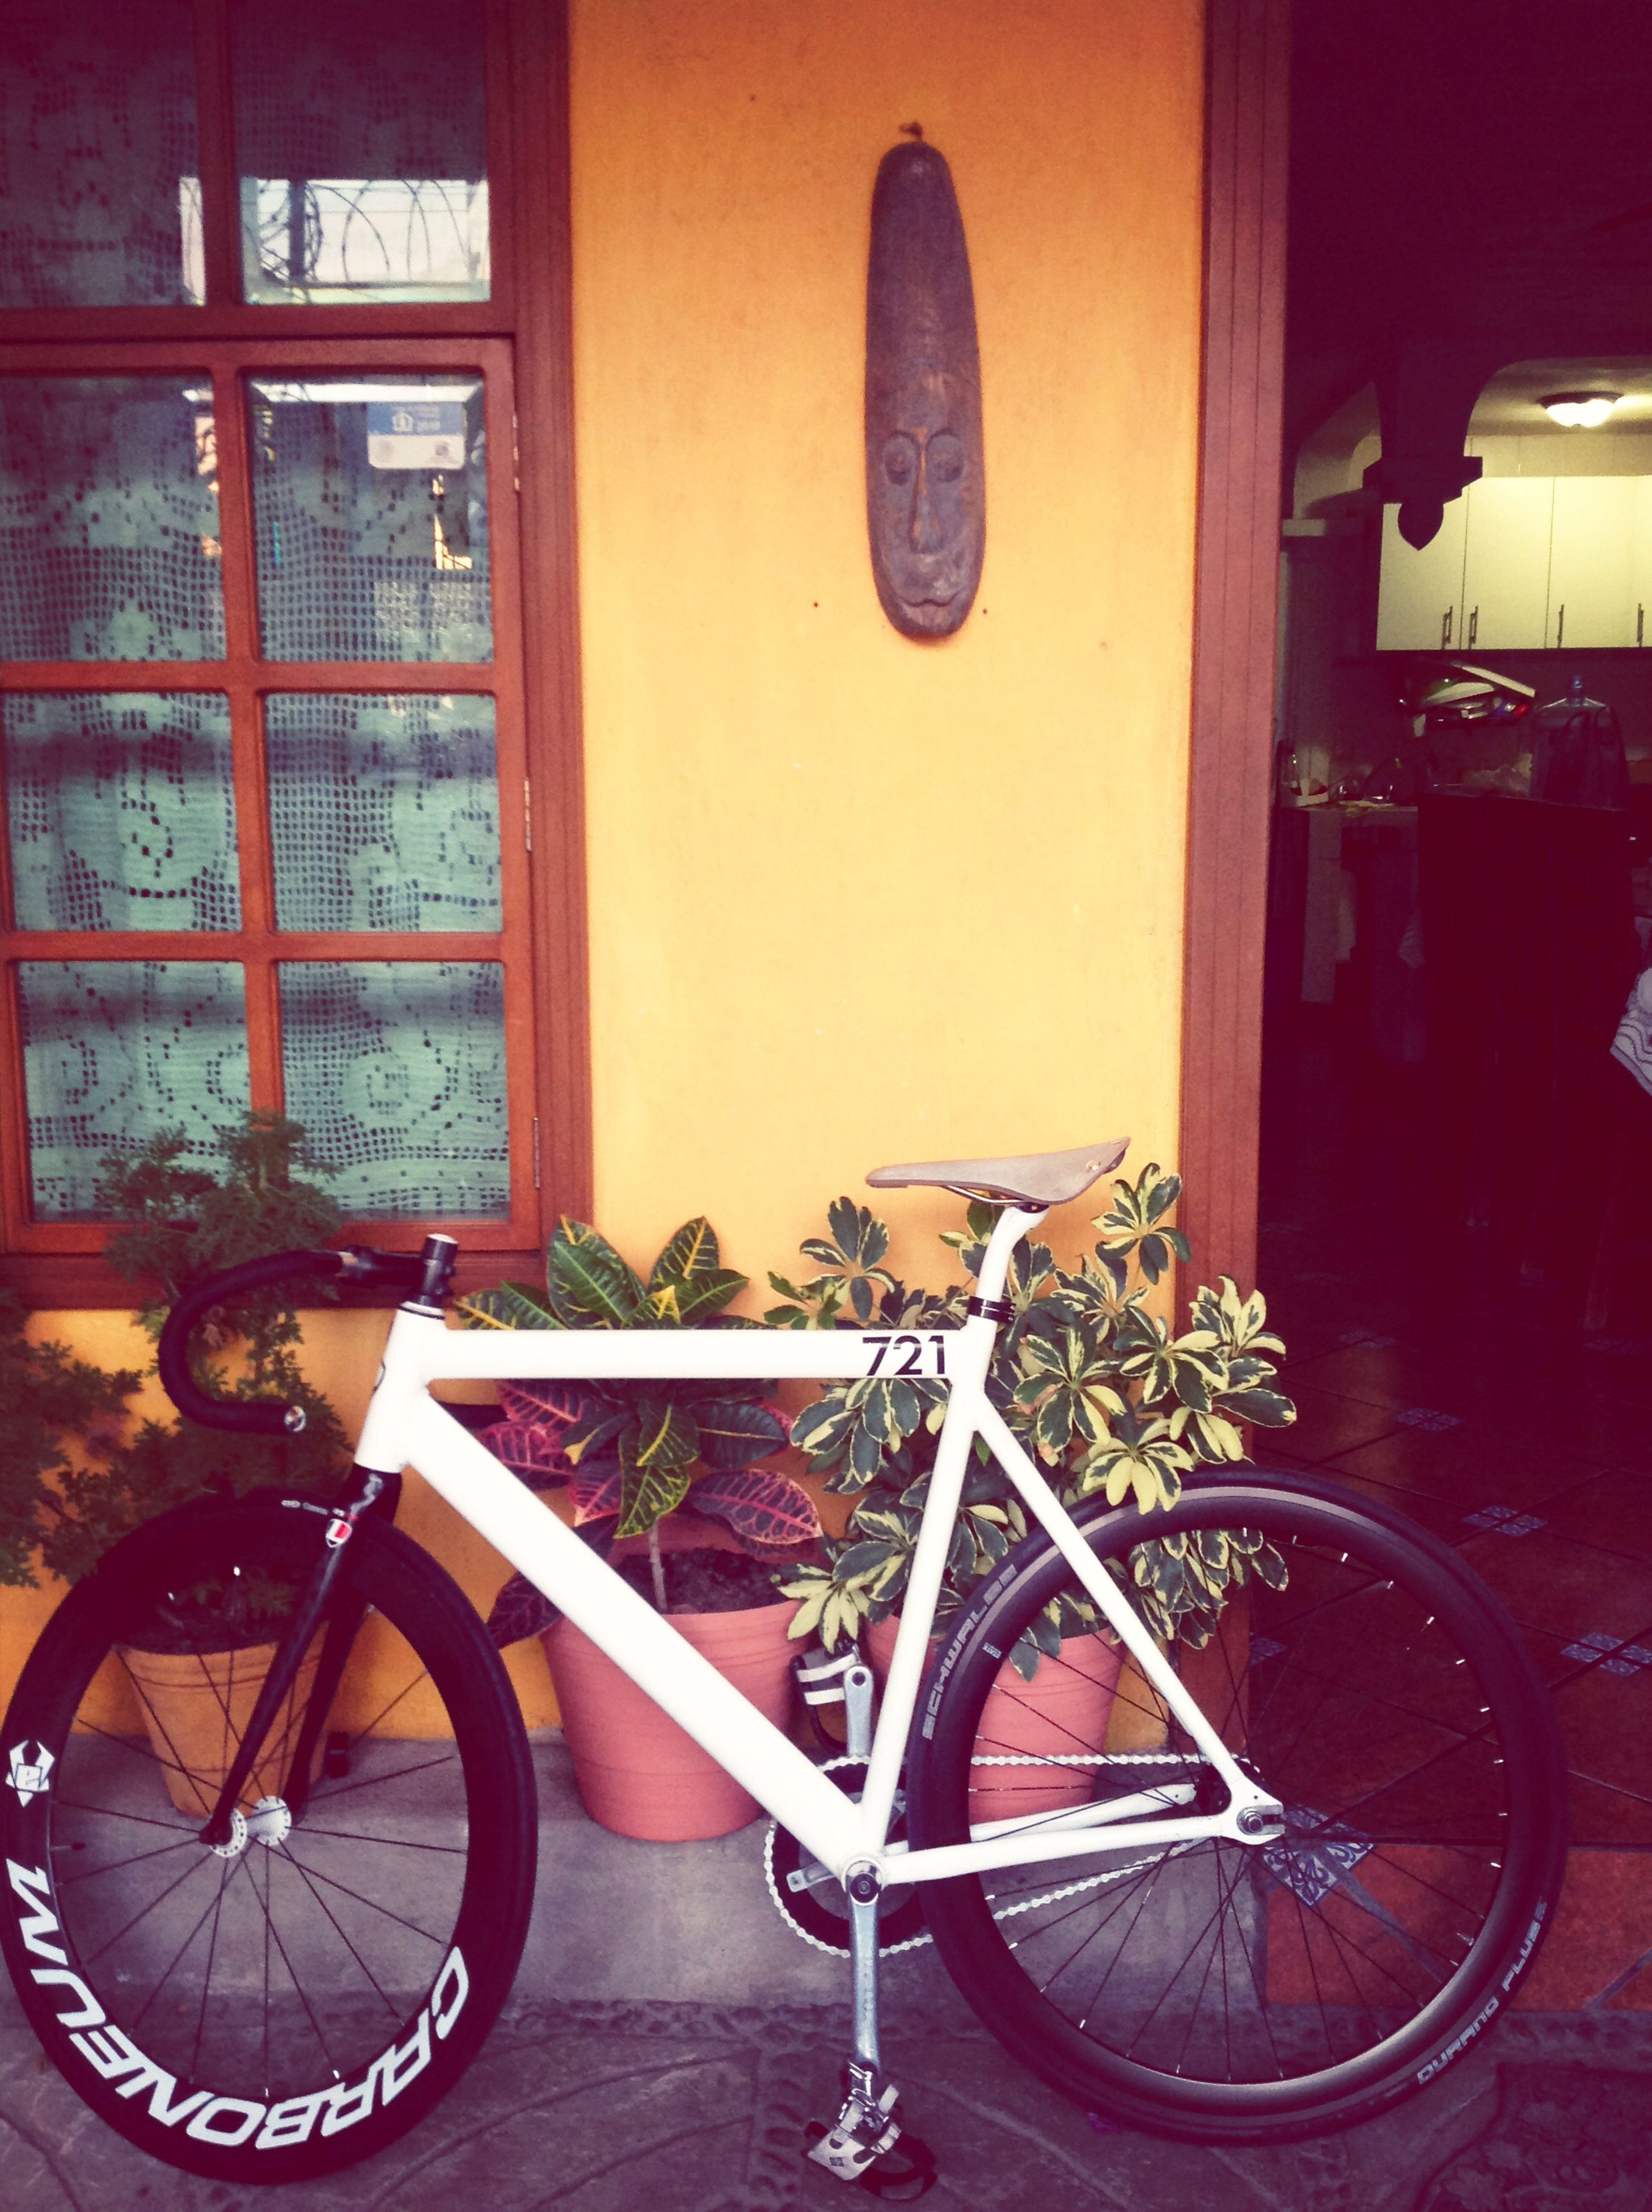 bicycle, stationary, mode of transport, land vehicle, transportation, parking, parked, wheel, architecture, built structure, old-fashioned, old, wall - building feature, retro styled, house, building exterior, no people, indoors, metal, abandoned